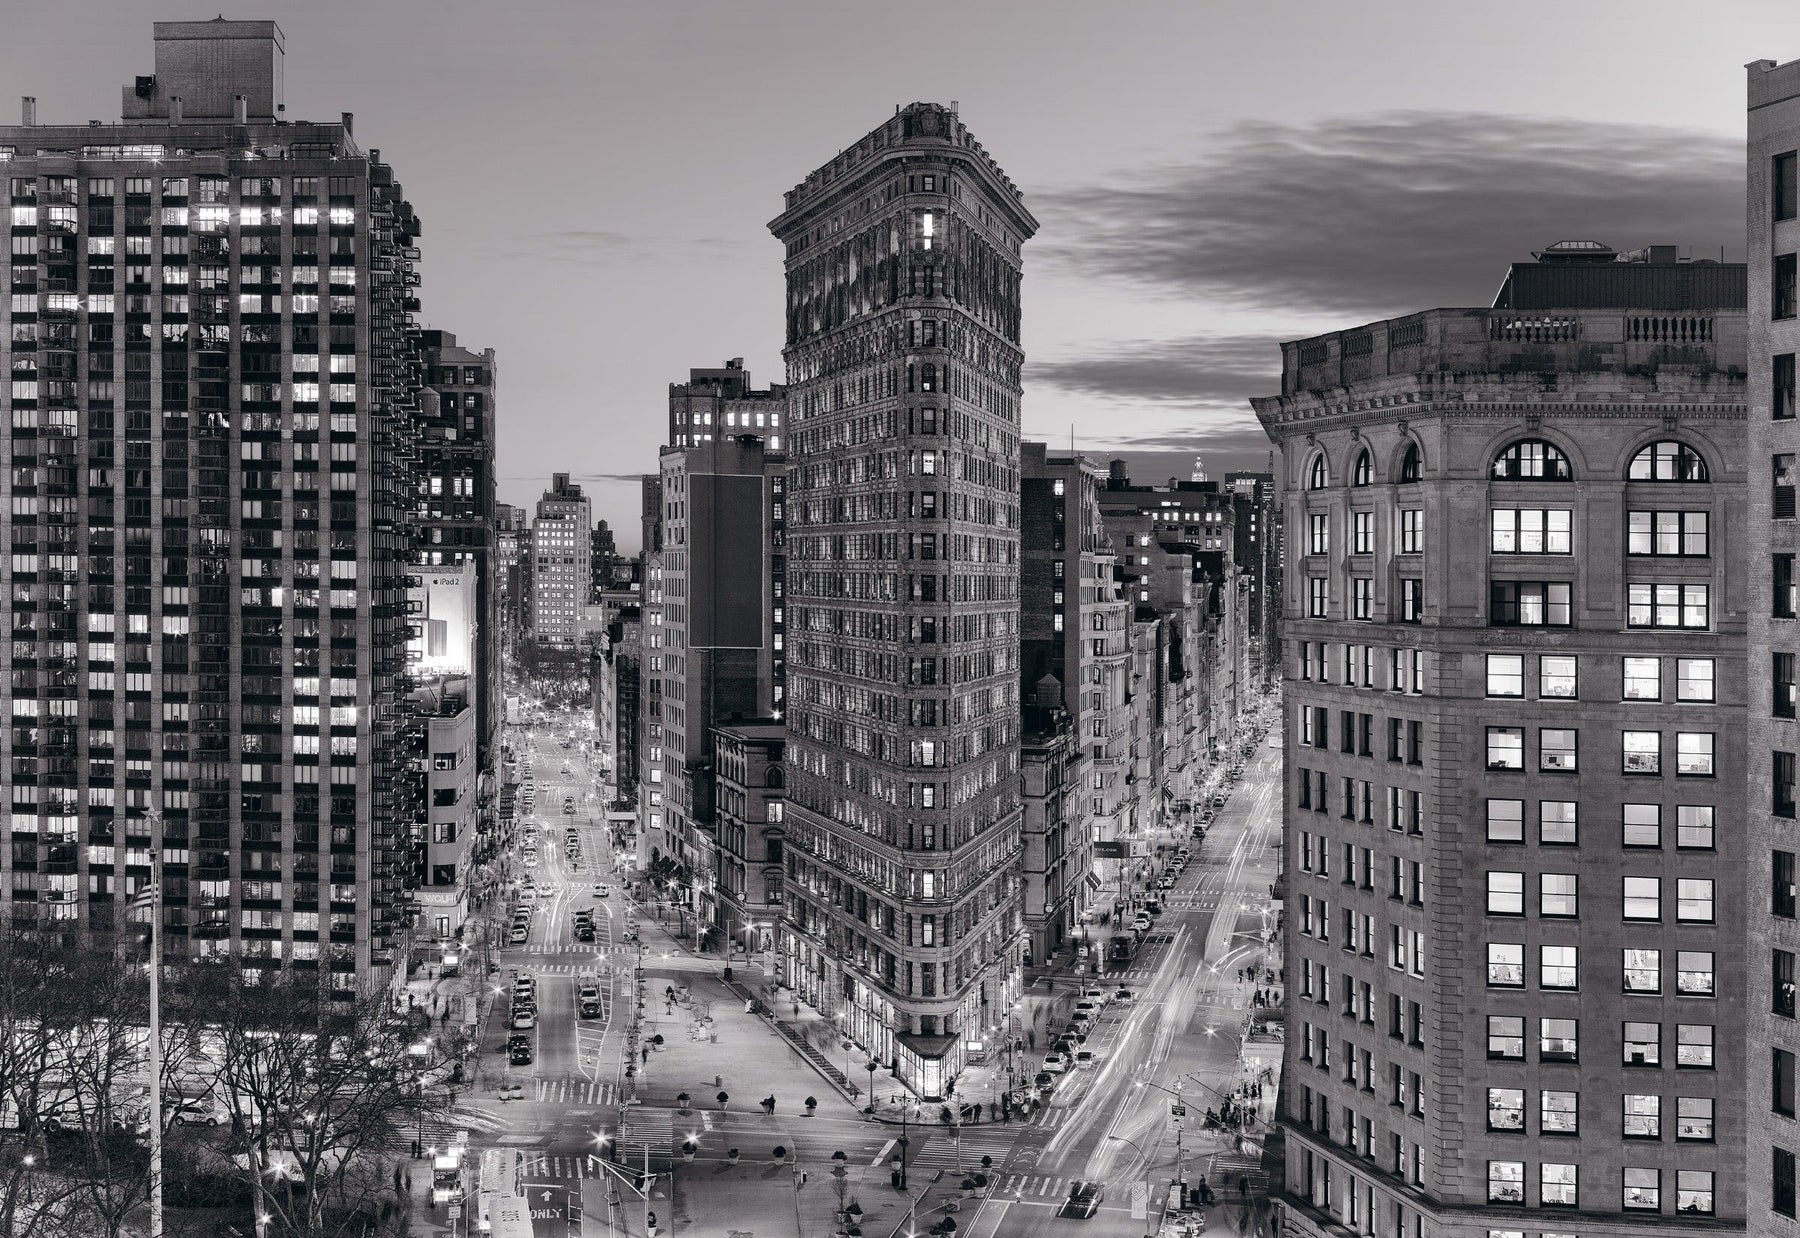 Black and white of the Flat Iron building in New York City and the surrounding streets at dusk